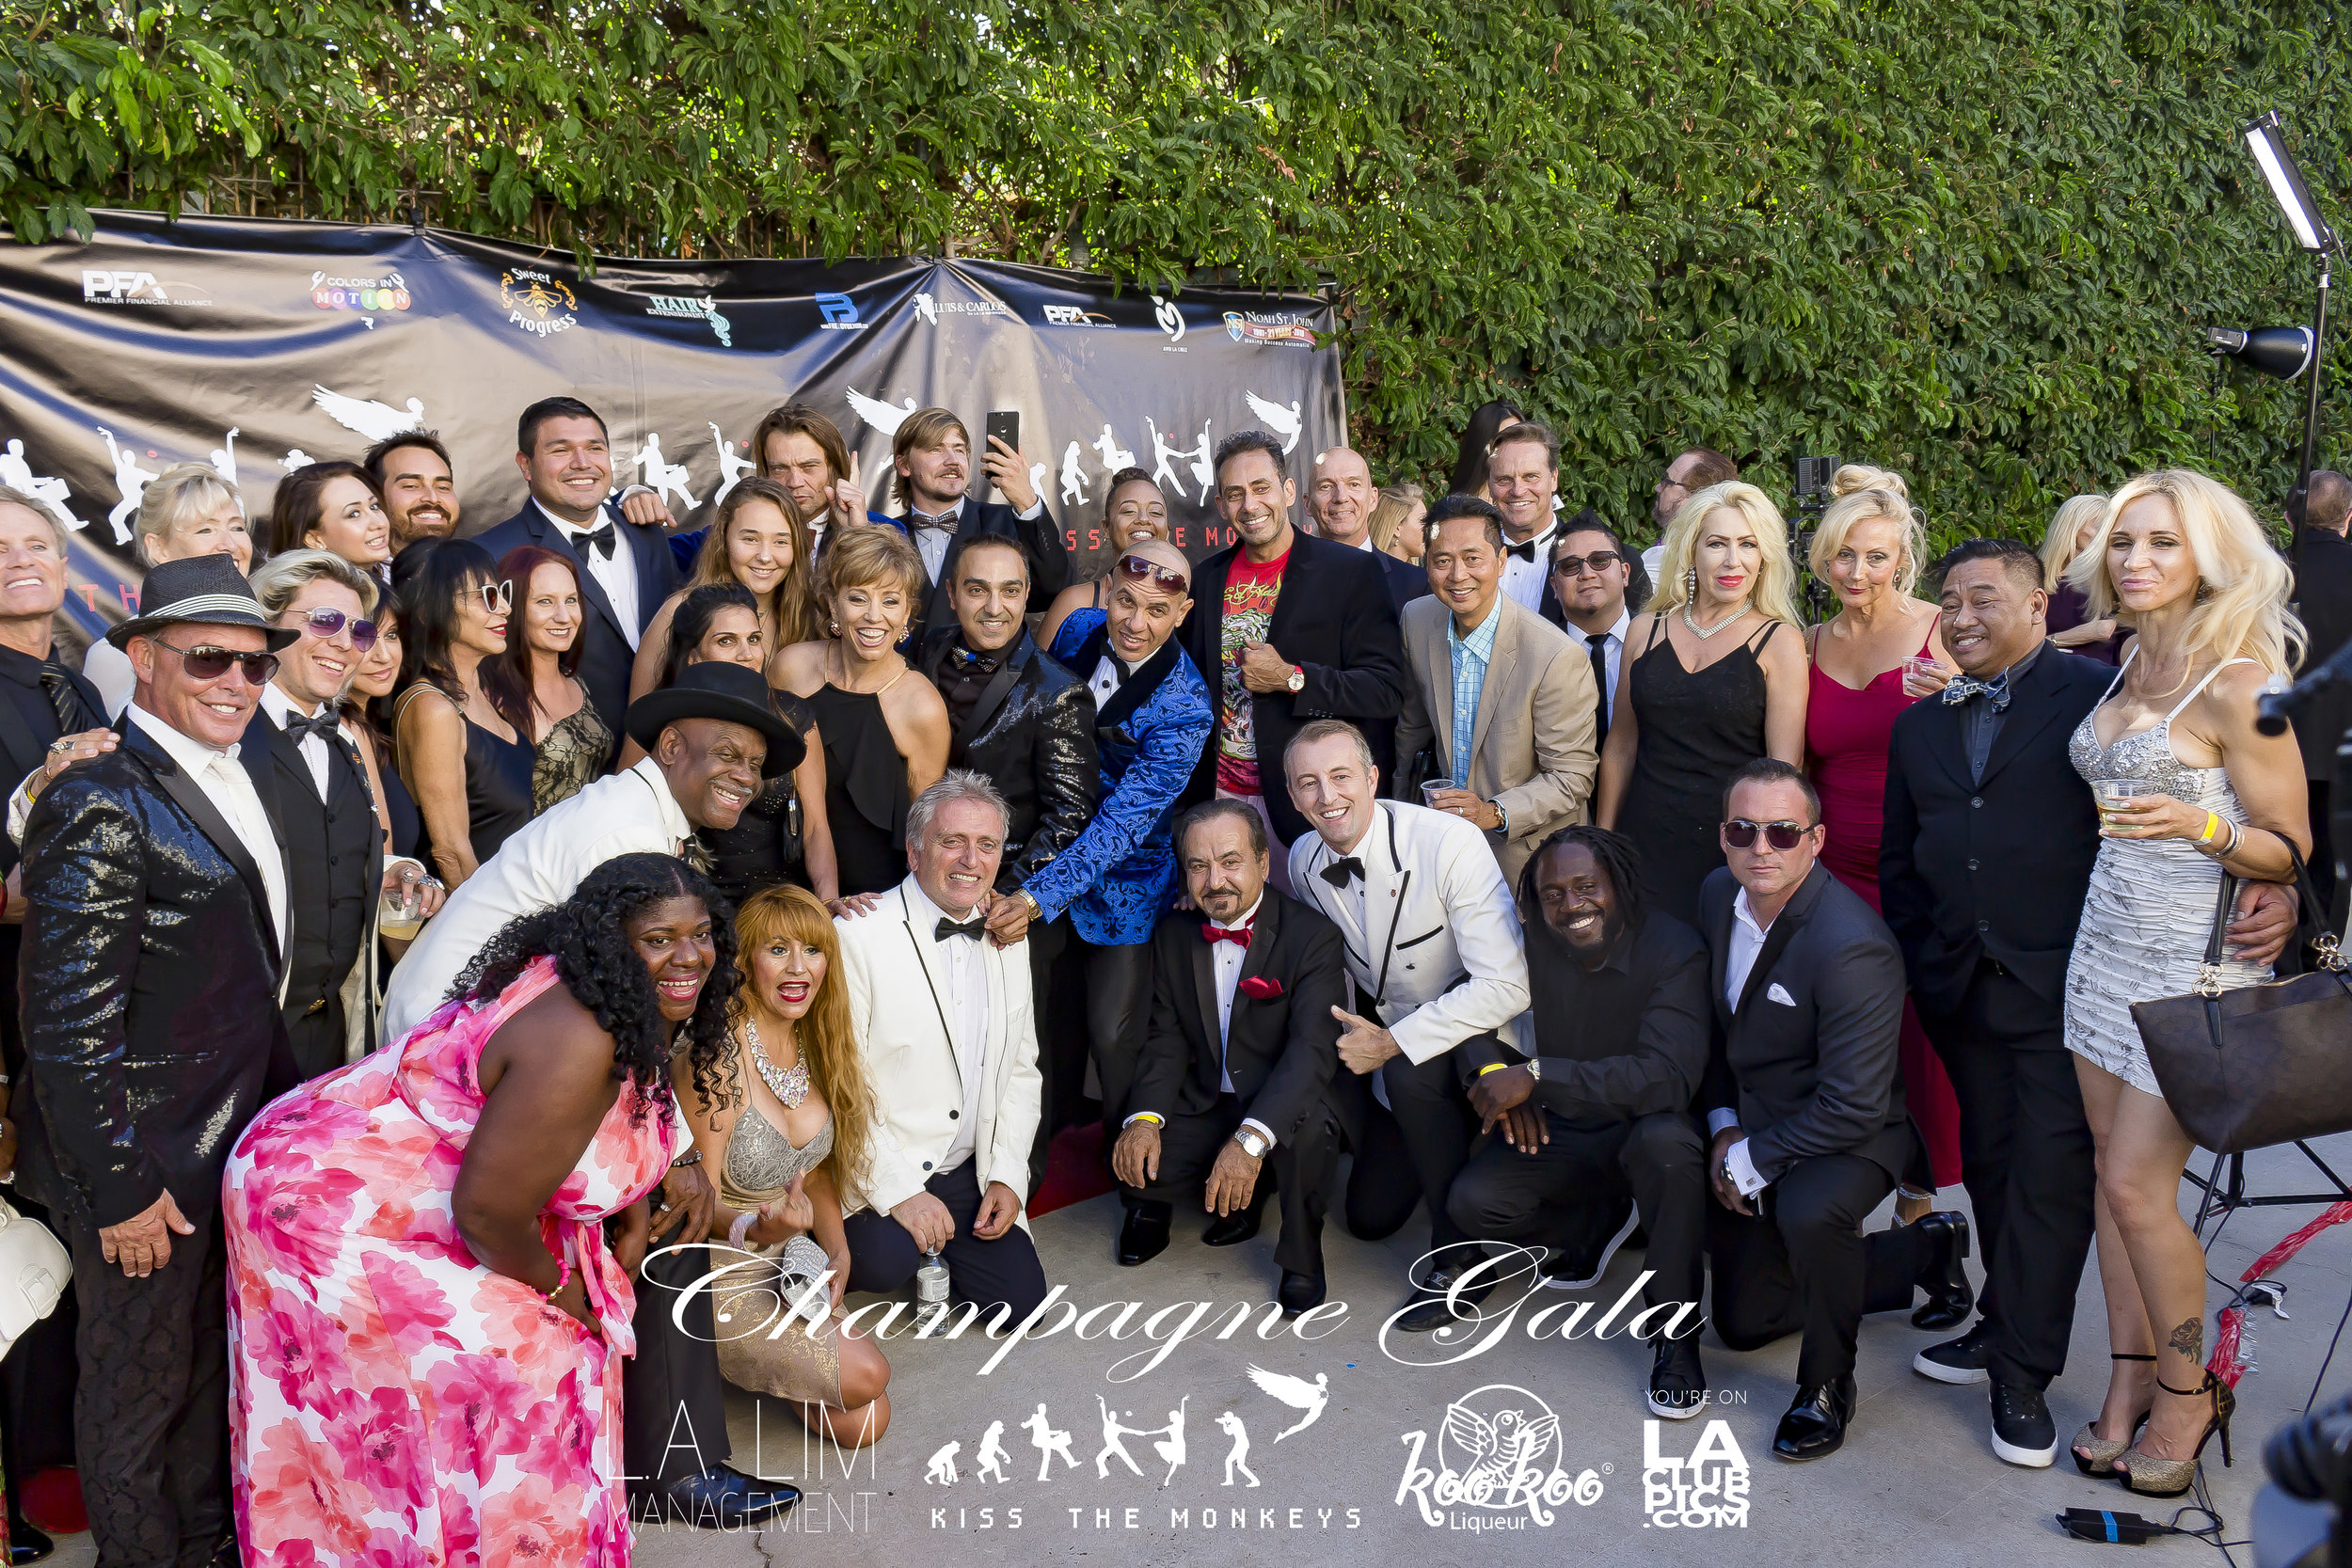 Kiss The Monkeys - Champagne Gala - 07-21-18_49.jpg